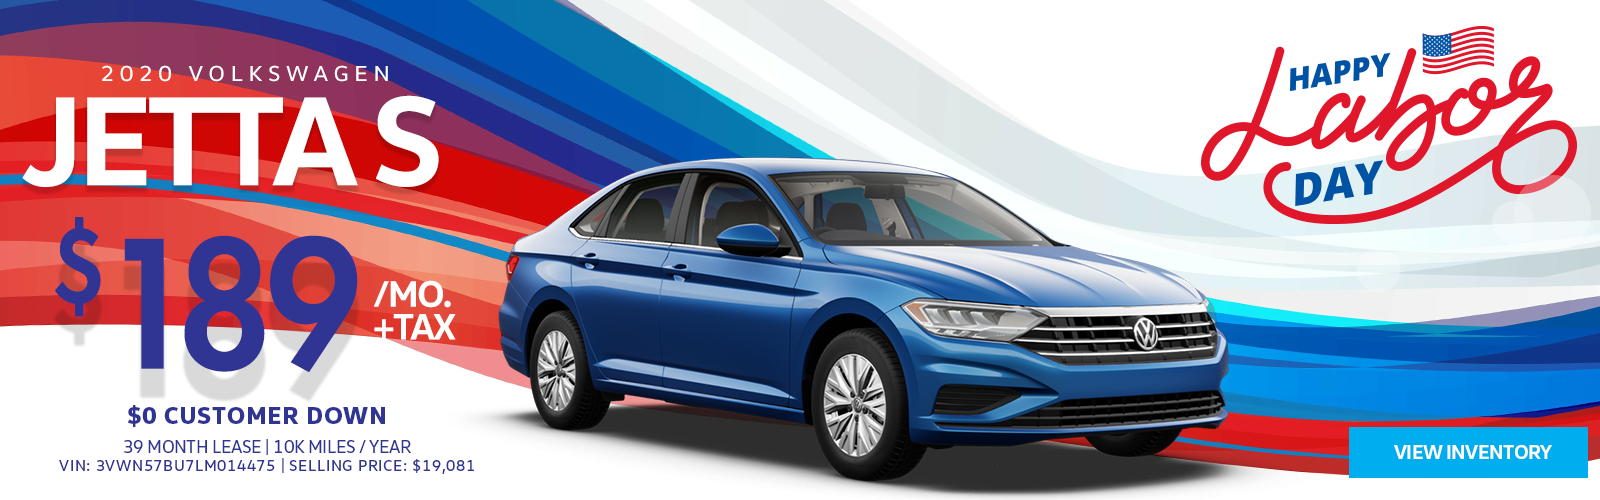 Lease a 2020 Jetta S for $189/mo.